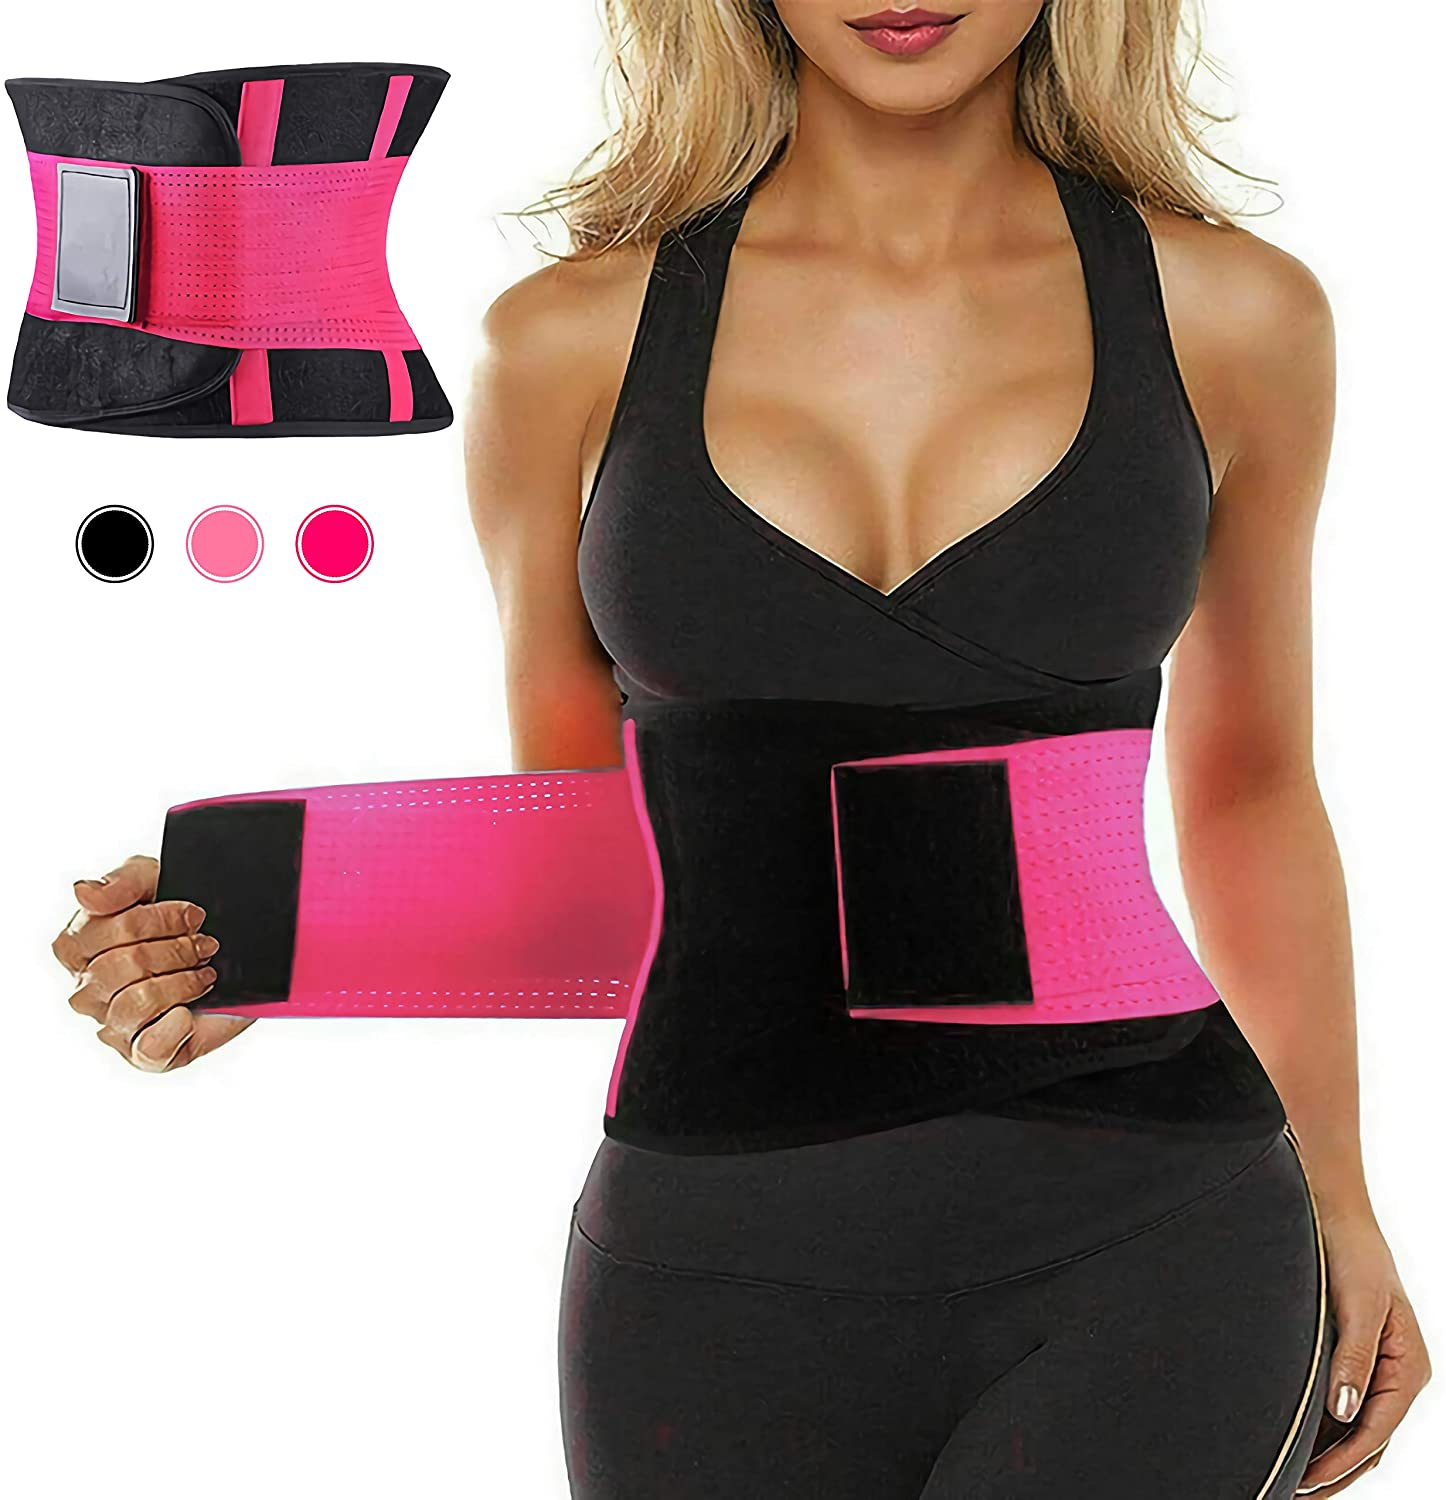 MMOUNT Waist Trainer Belt for Weight Loss - Sport Girdle Belt -Waist Cincher Trimmer Slimming Body Shaper Belt